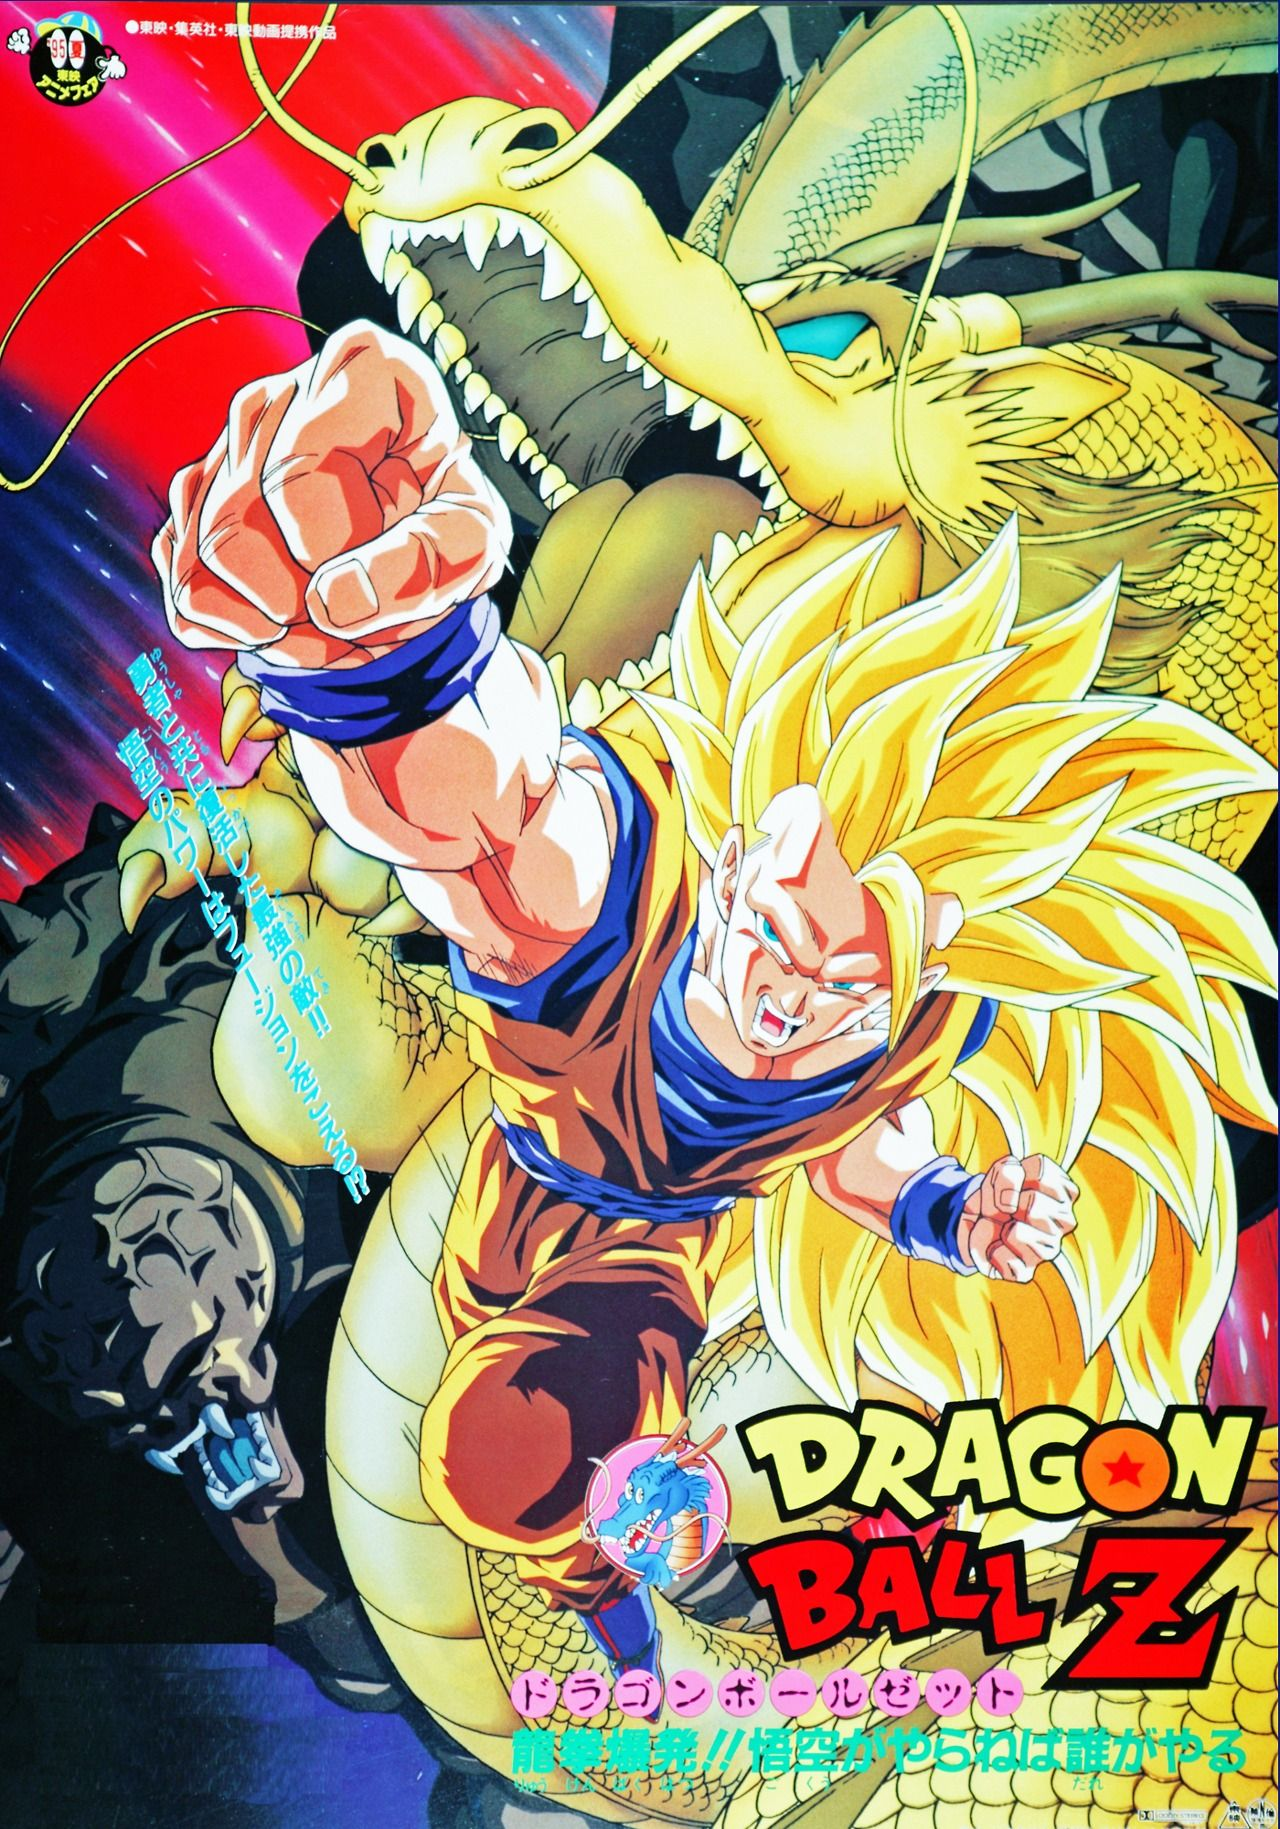 Poster Art For The 13th Dragon Ball Z Movie Dragon Fist Explosion If Goku Won T Do It Who Will Art By Tadayosh Dragon Ball Art Dragon Ball Dragon Ball Z